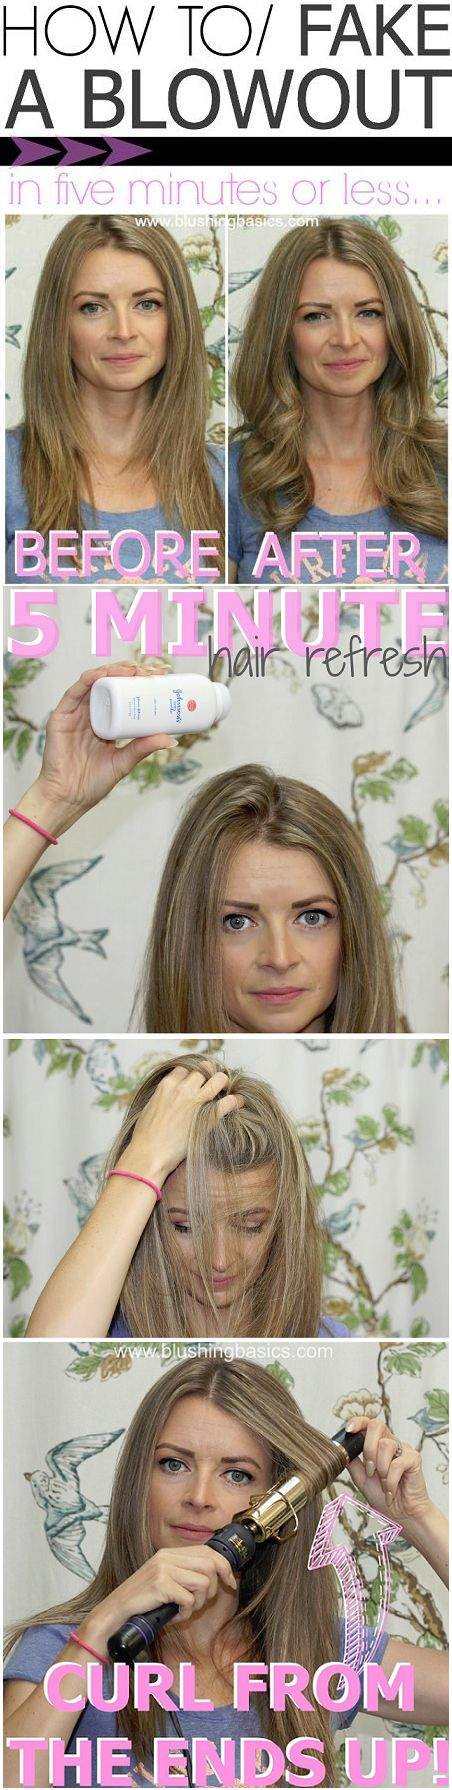 Fake a blowout by curling from the ends up using a large barreled curling iron. | 29 Hairstyling Hacks Every Girl Should Know